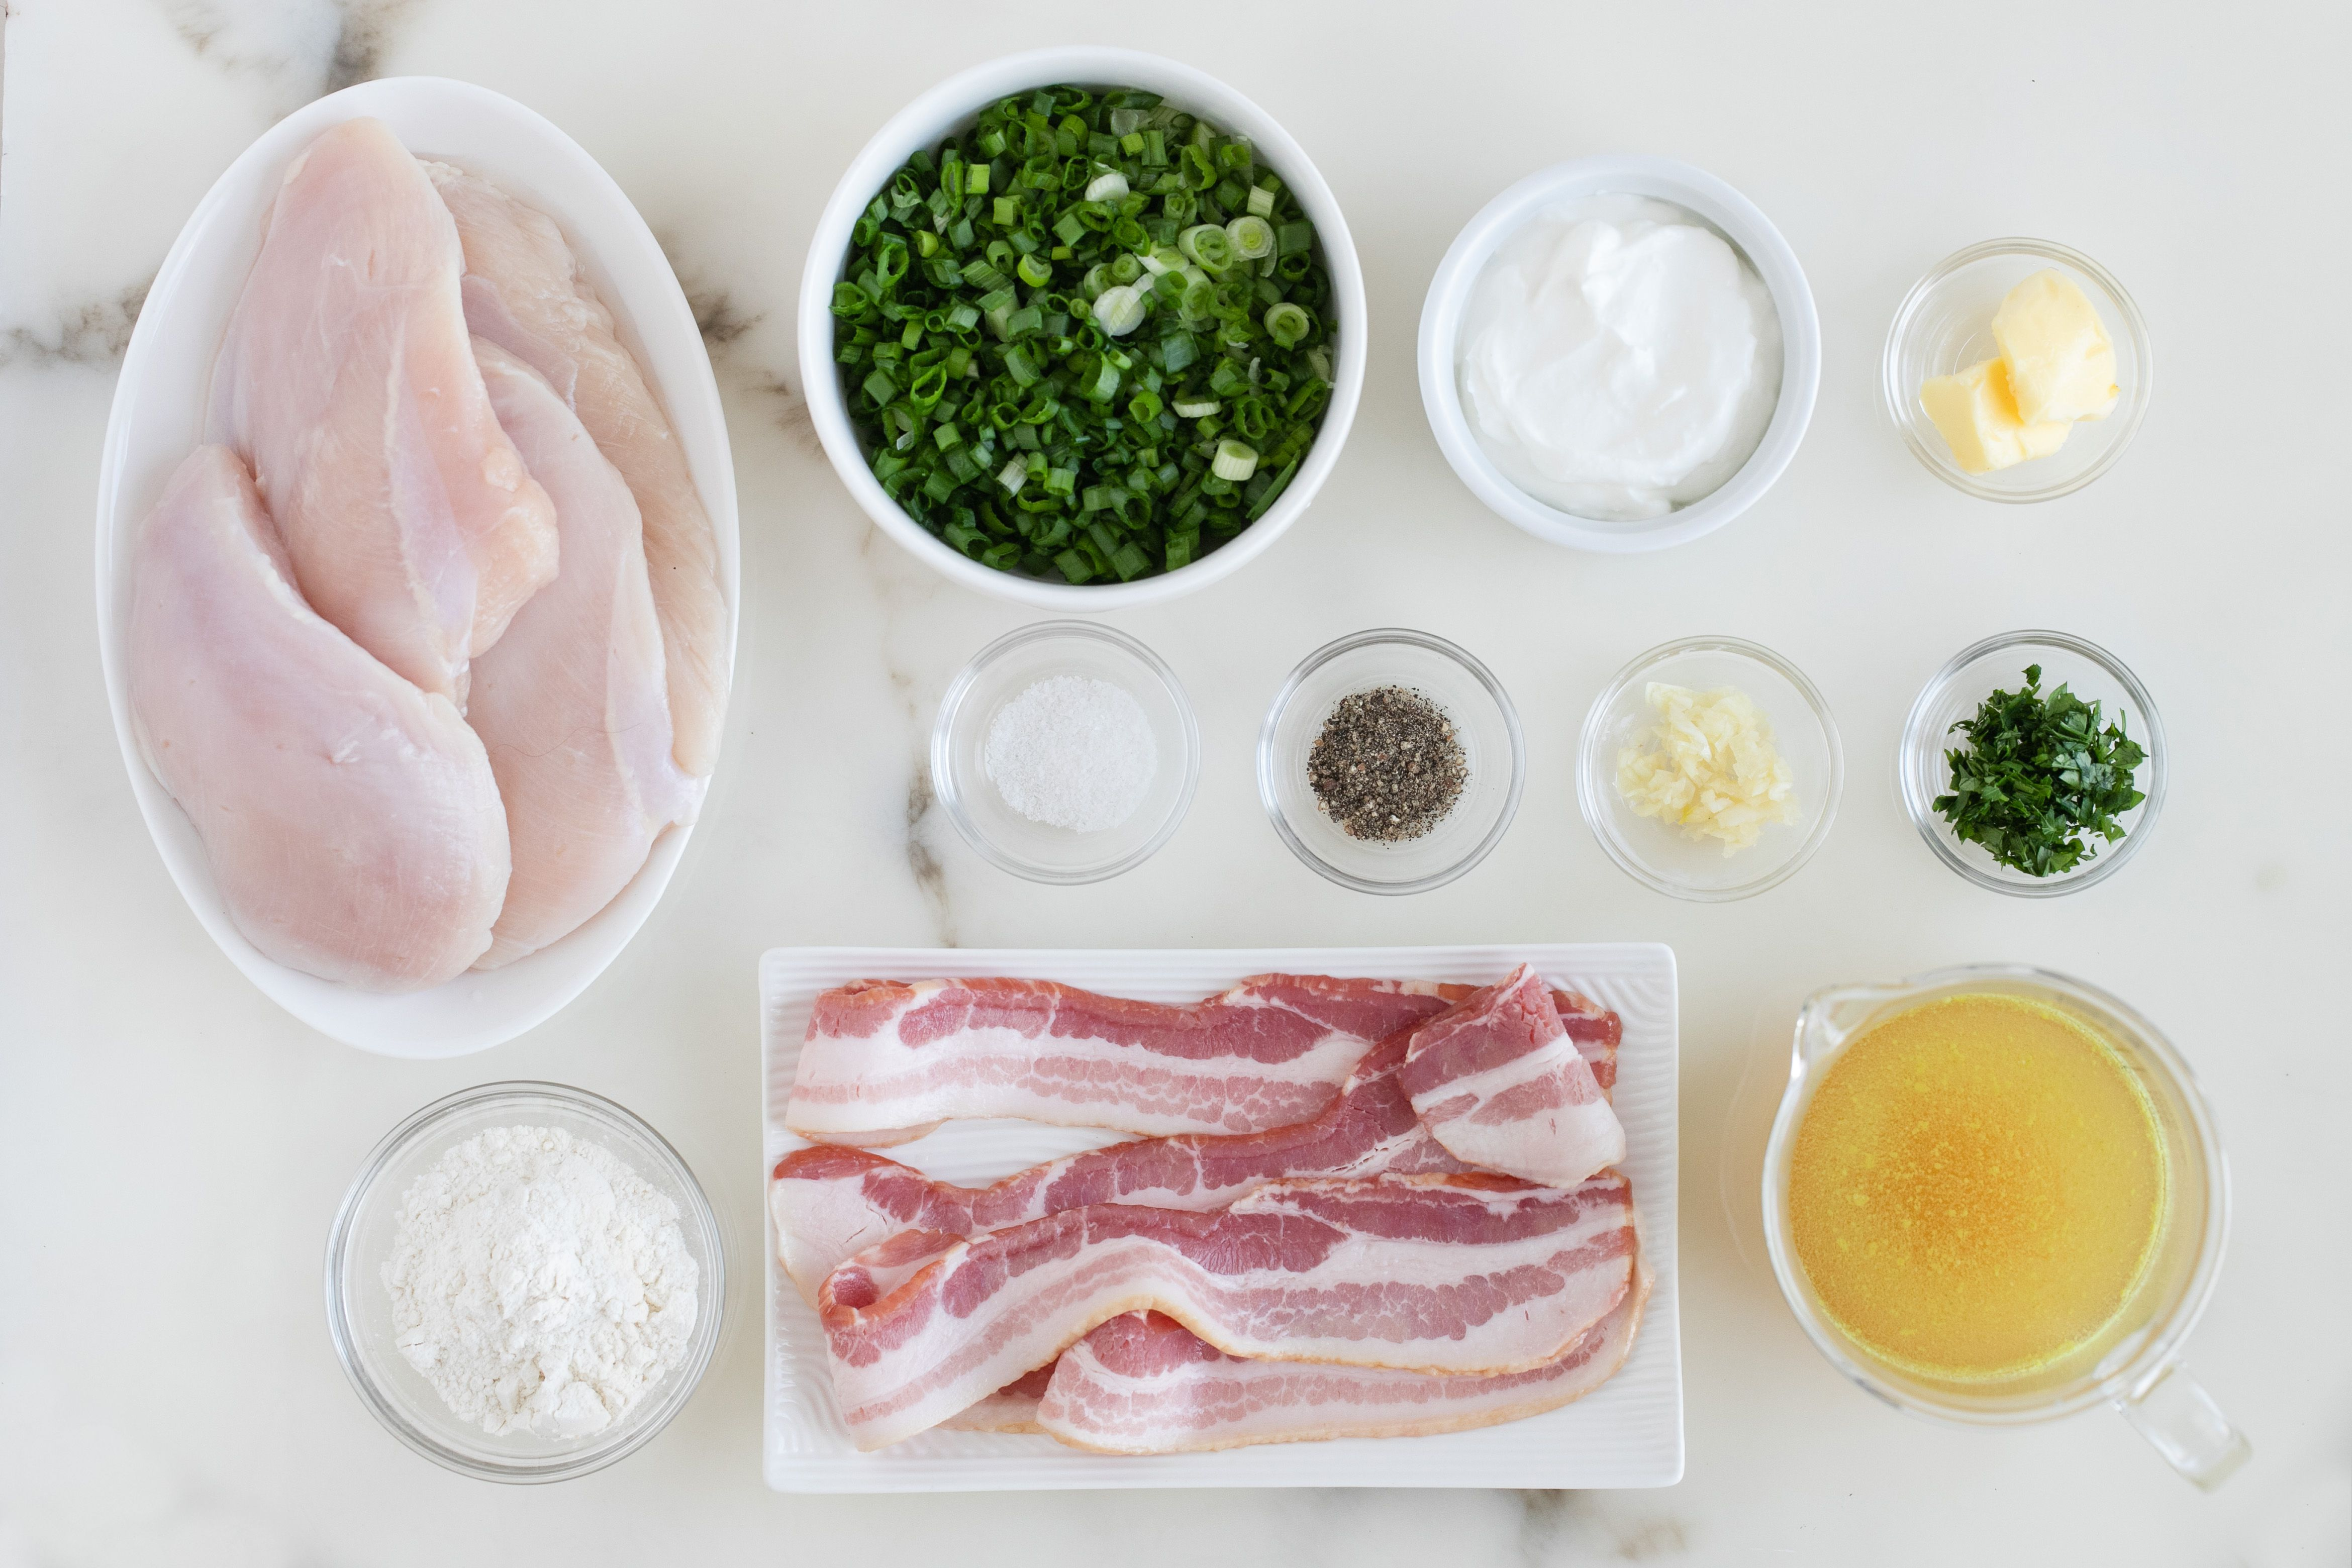 Chicken and bacon recipe ingredients